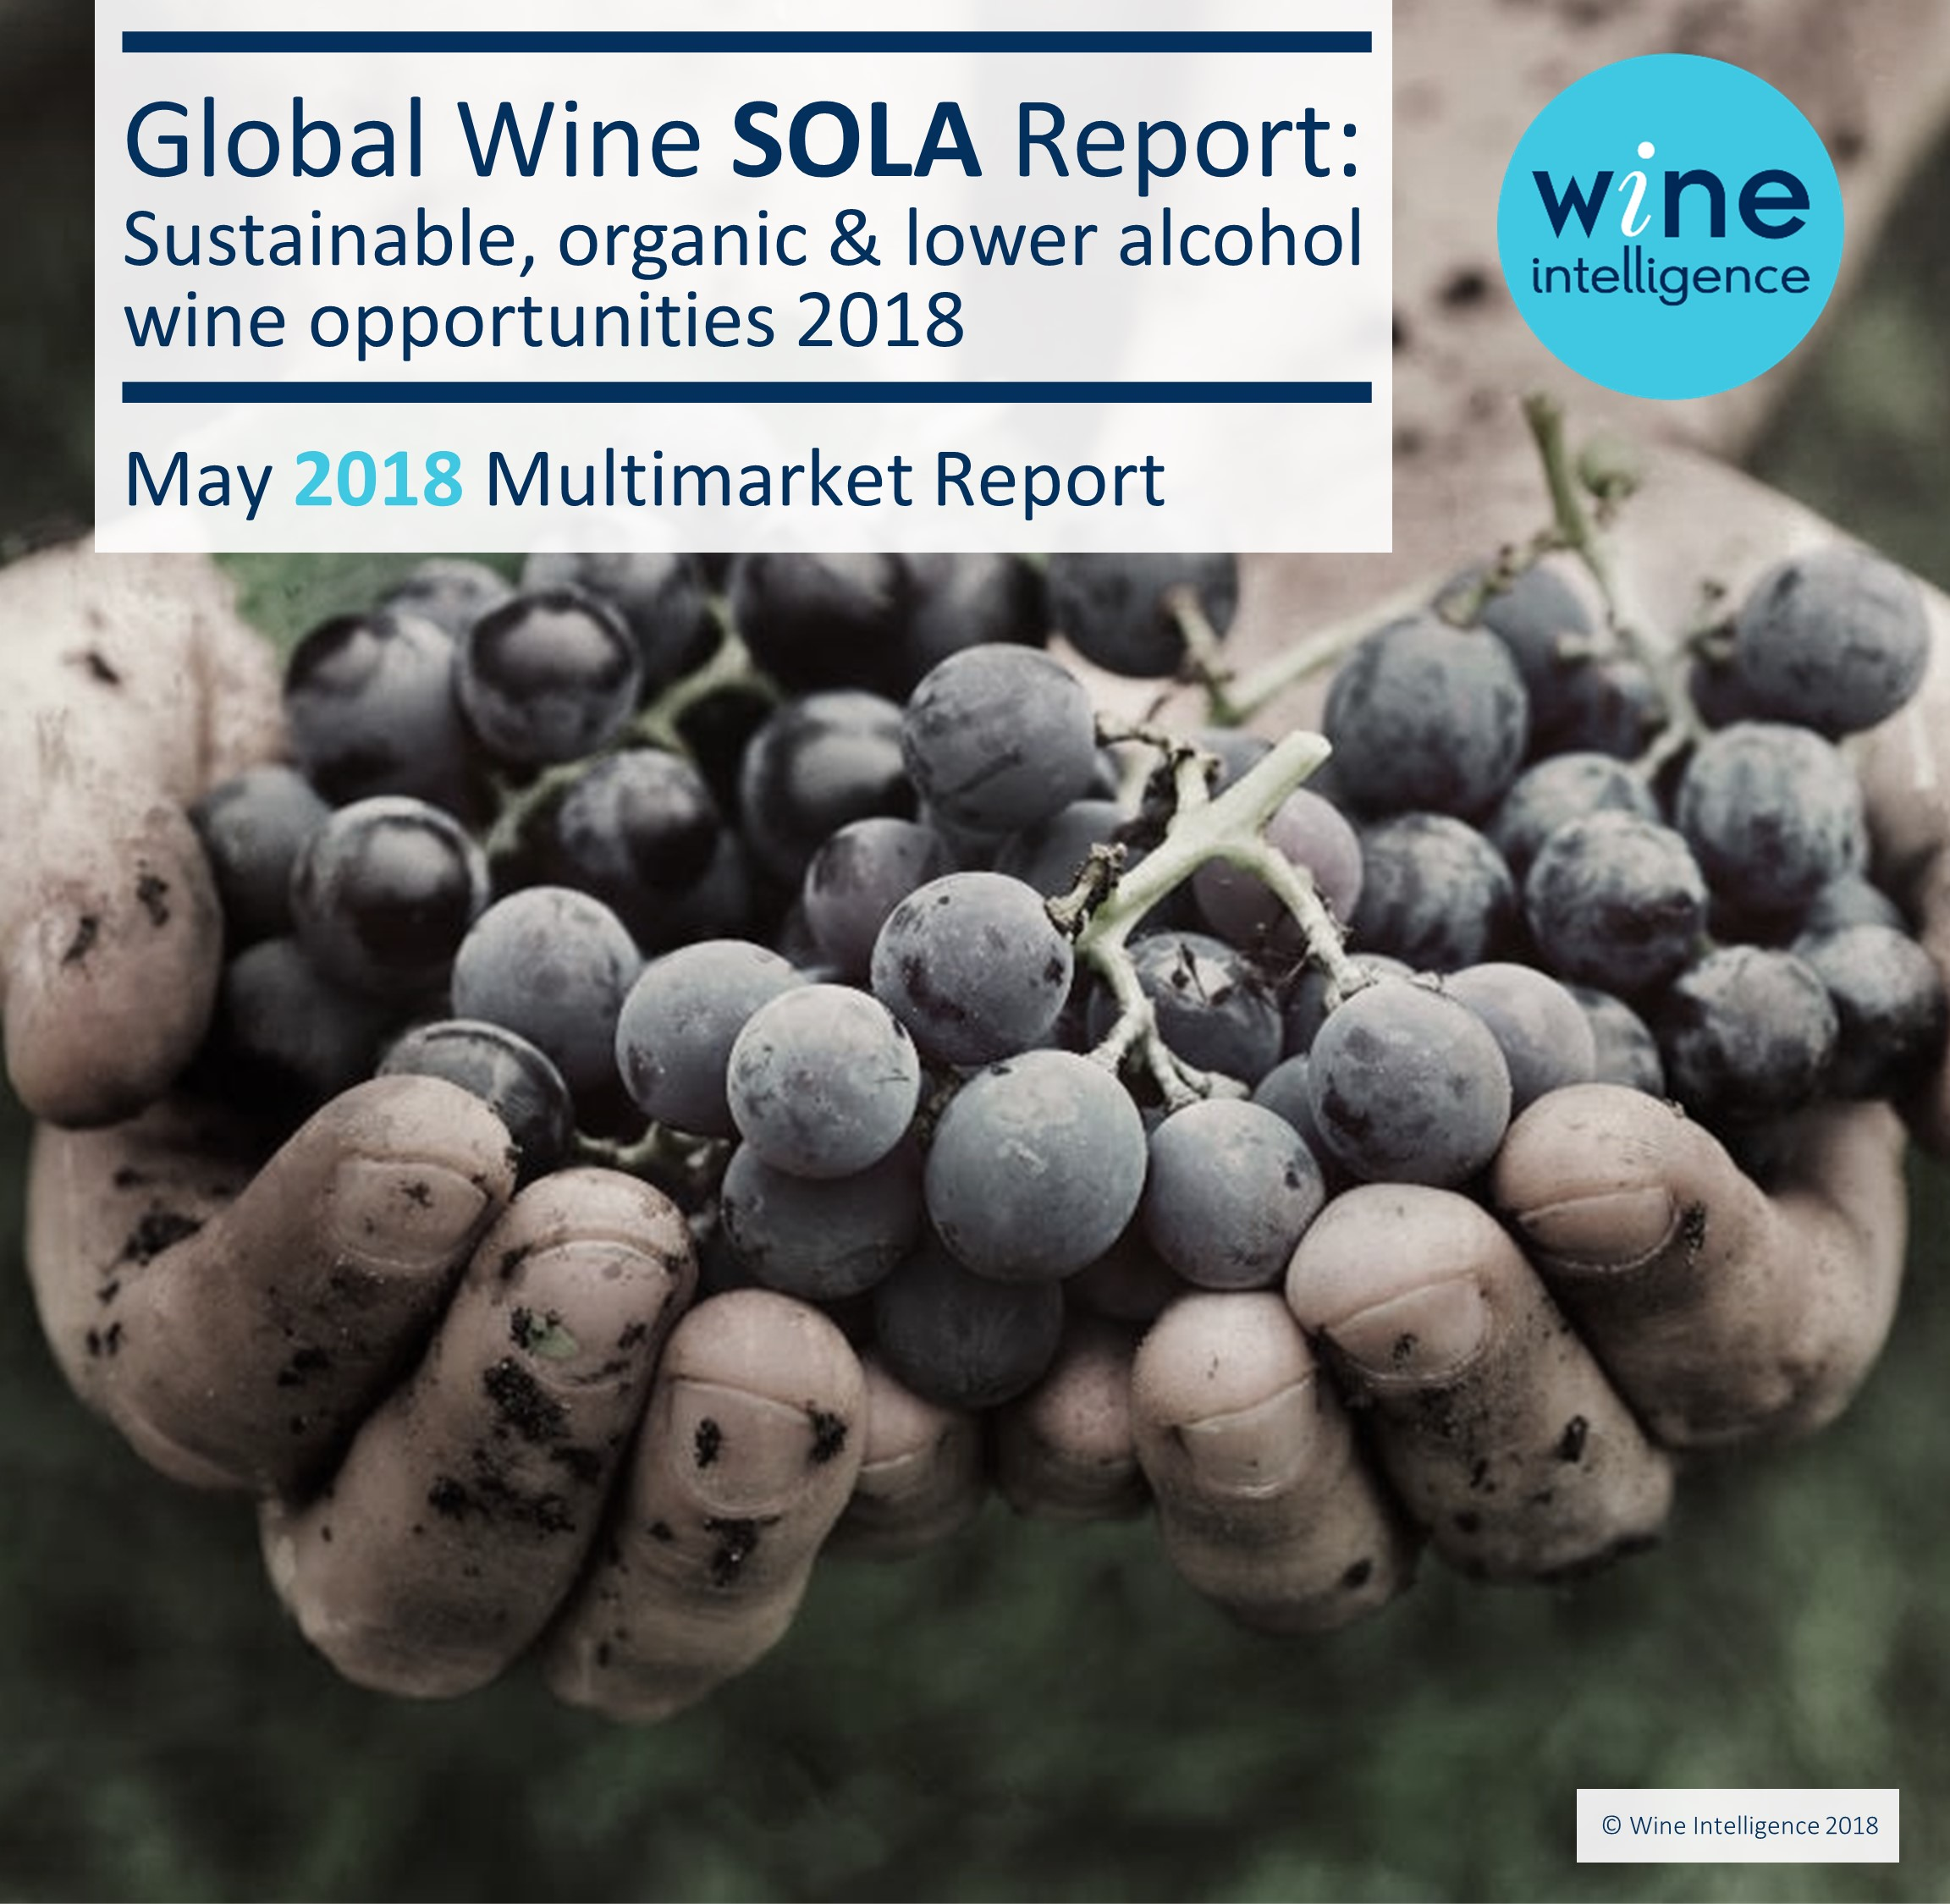 SOLA - Press release: China's imported wine market